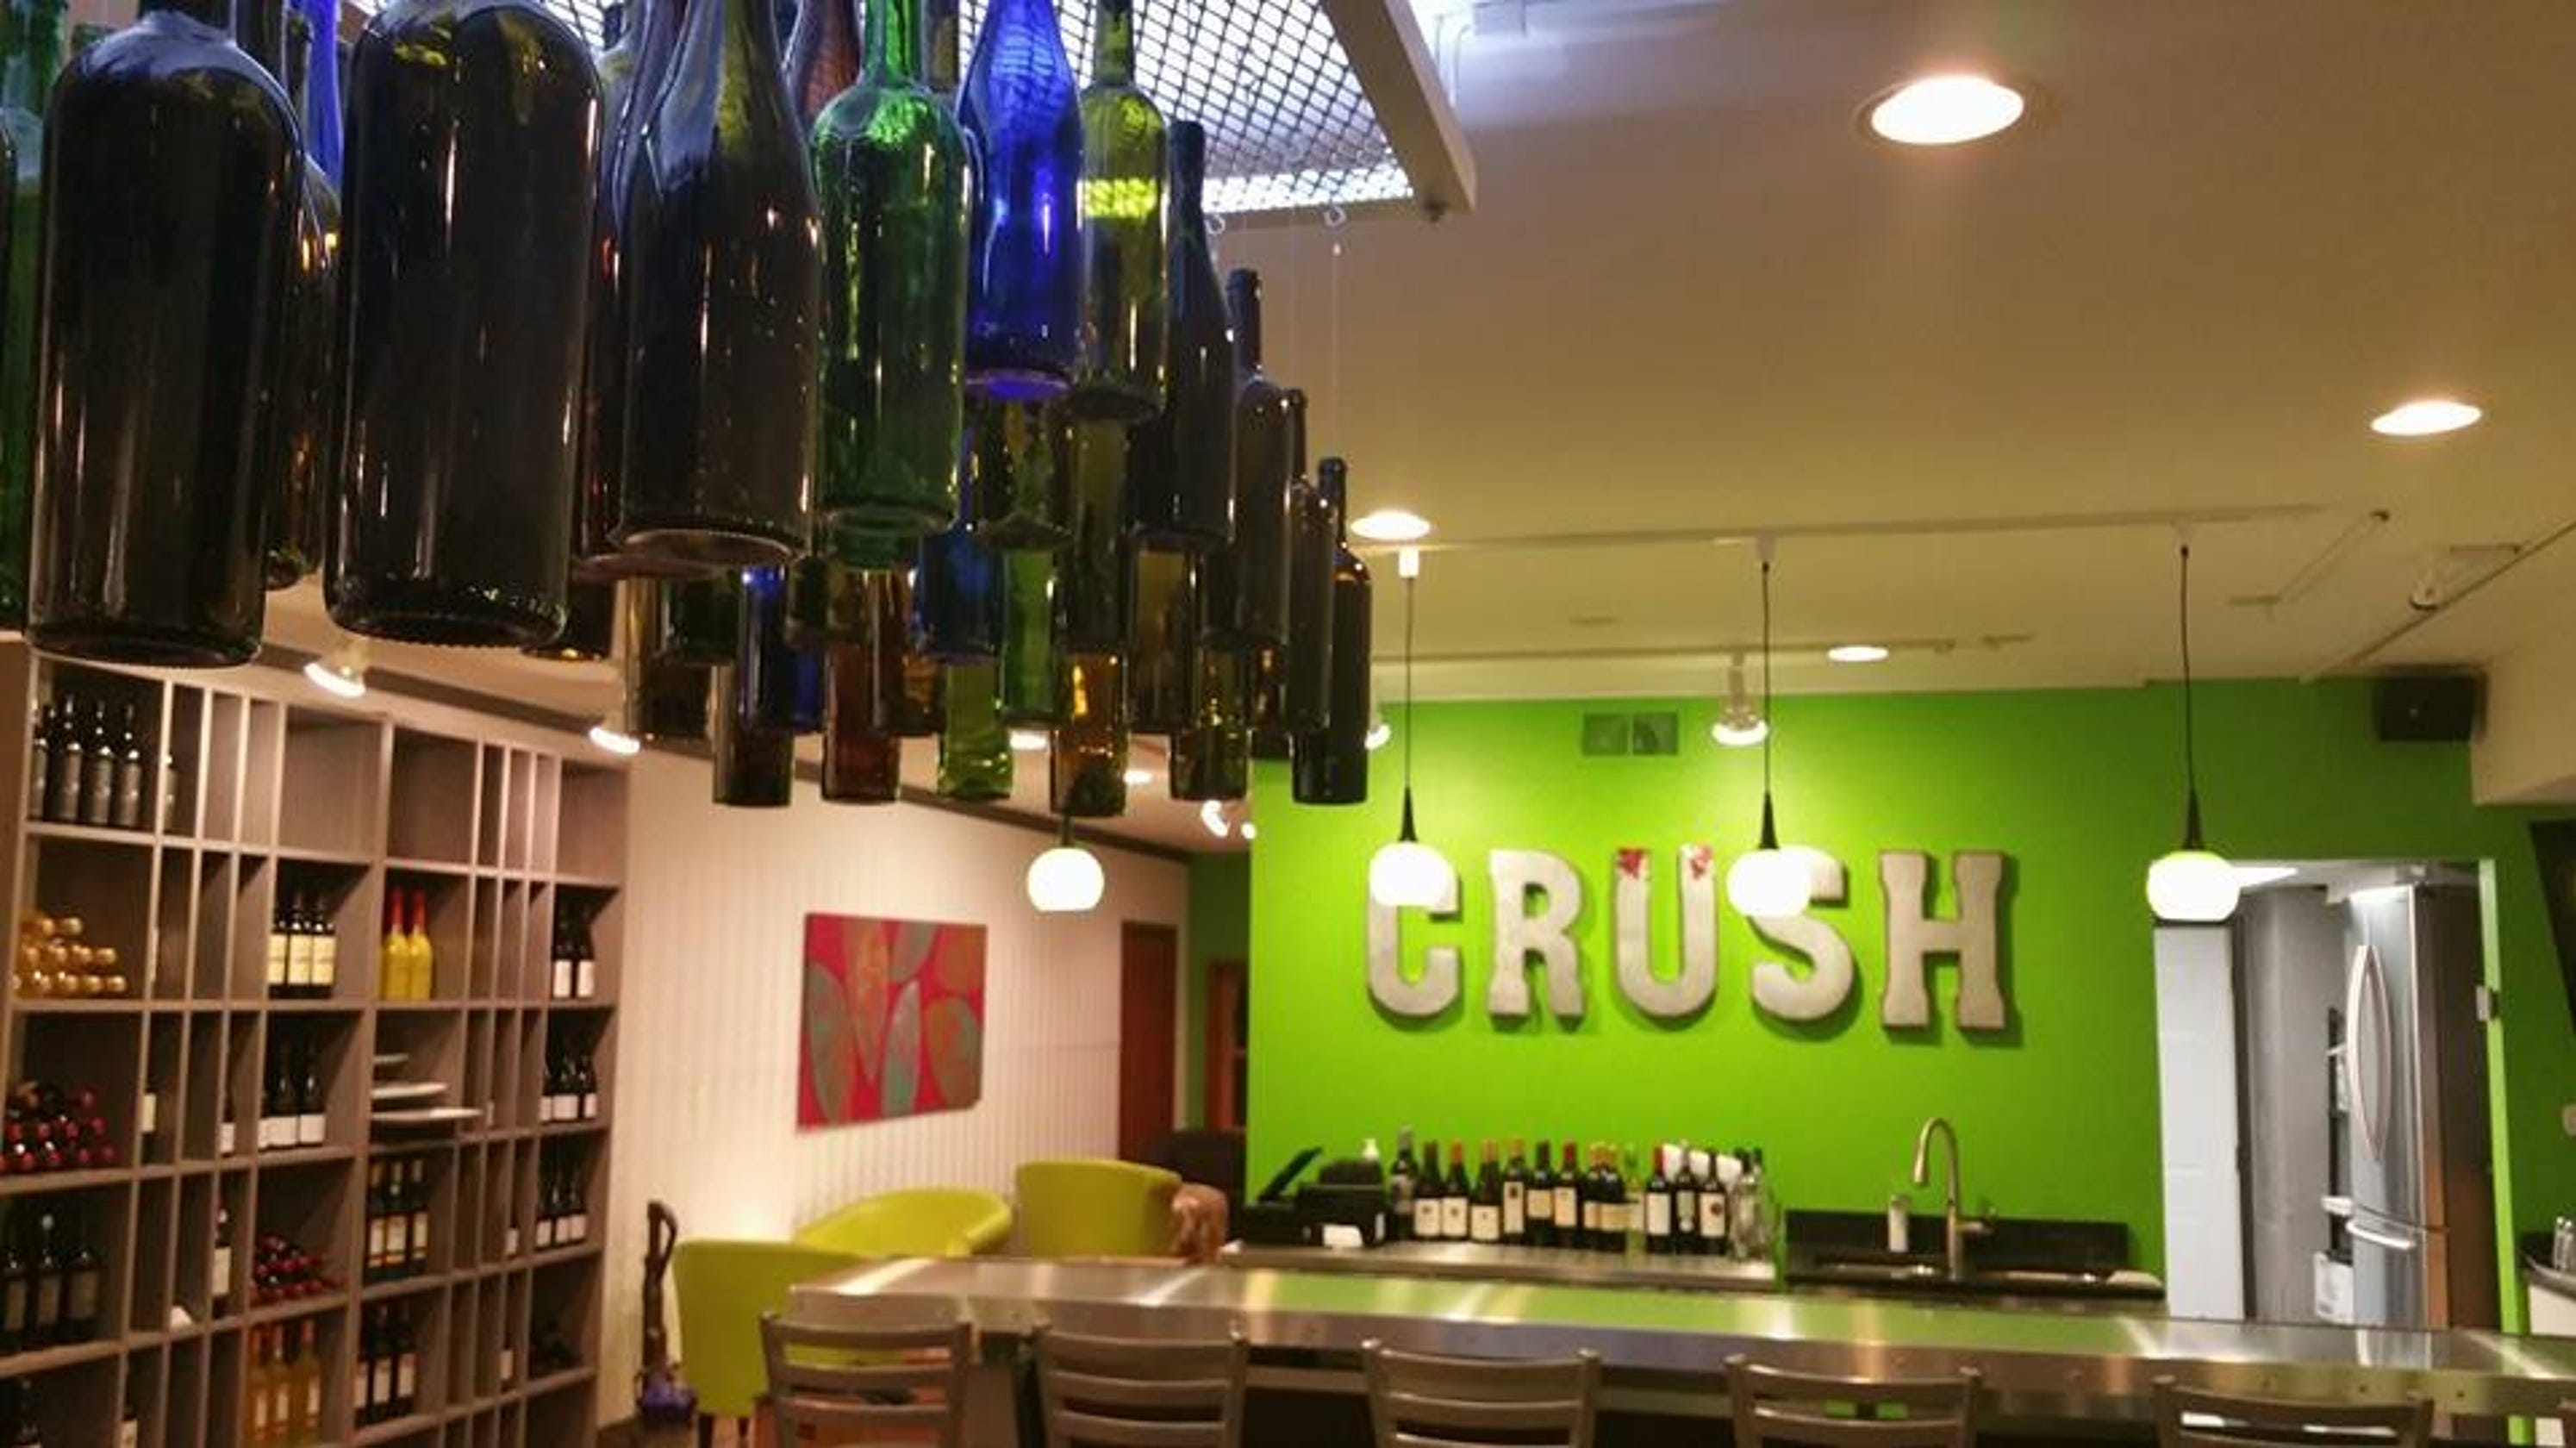 Waukesha Crush Wine Bar to open Muskego location later this year